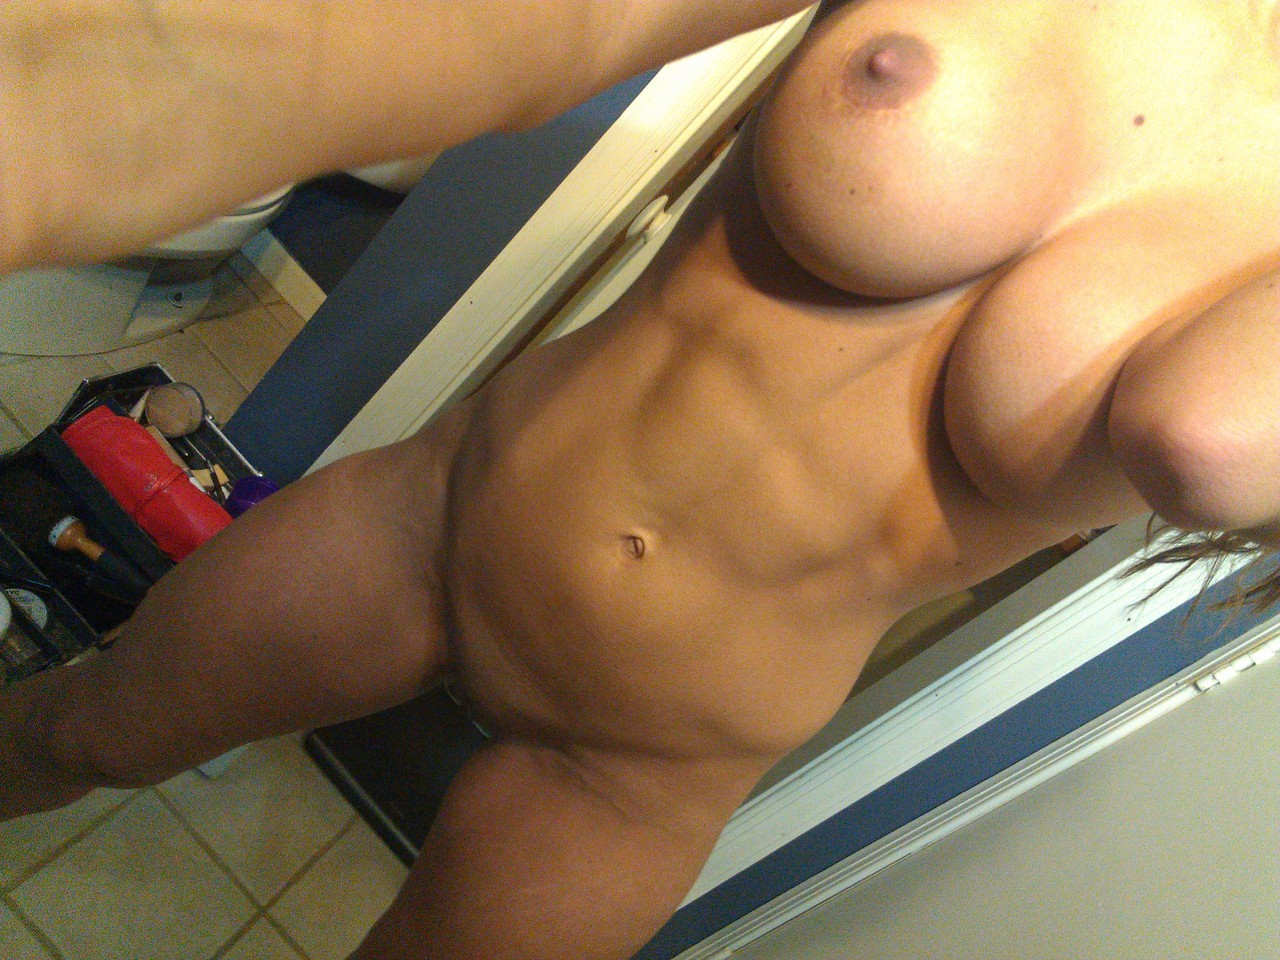 Abs naked girl